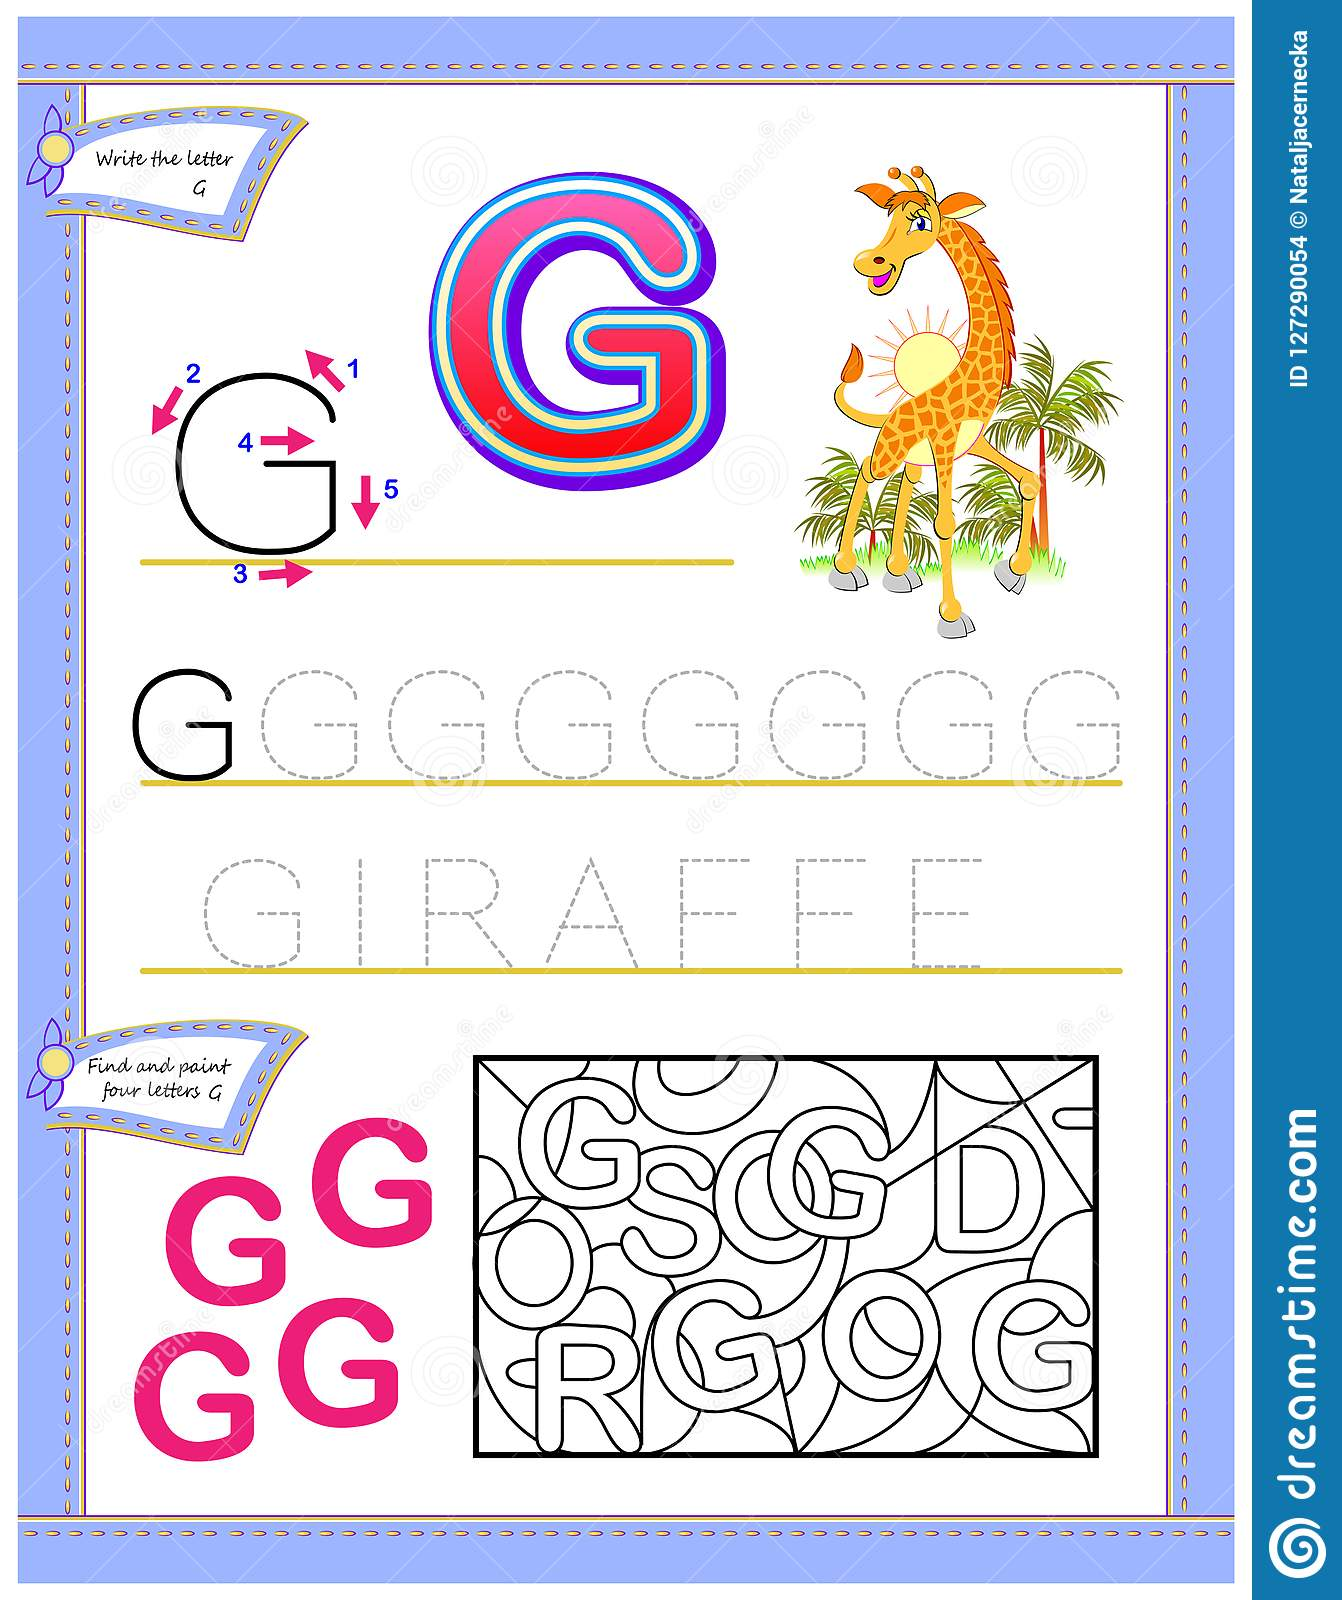 Worksheet For Kids With Letter G For Study English Alphabet Logic Puzzle Game Developing Children Skills For Writing And Reading Stock Vector Illustration Of Letter Language 127290054 - 19+ Writing Letter G Worksheets For Kindergarten Images